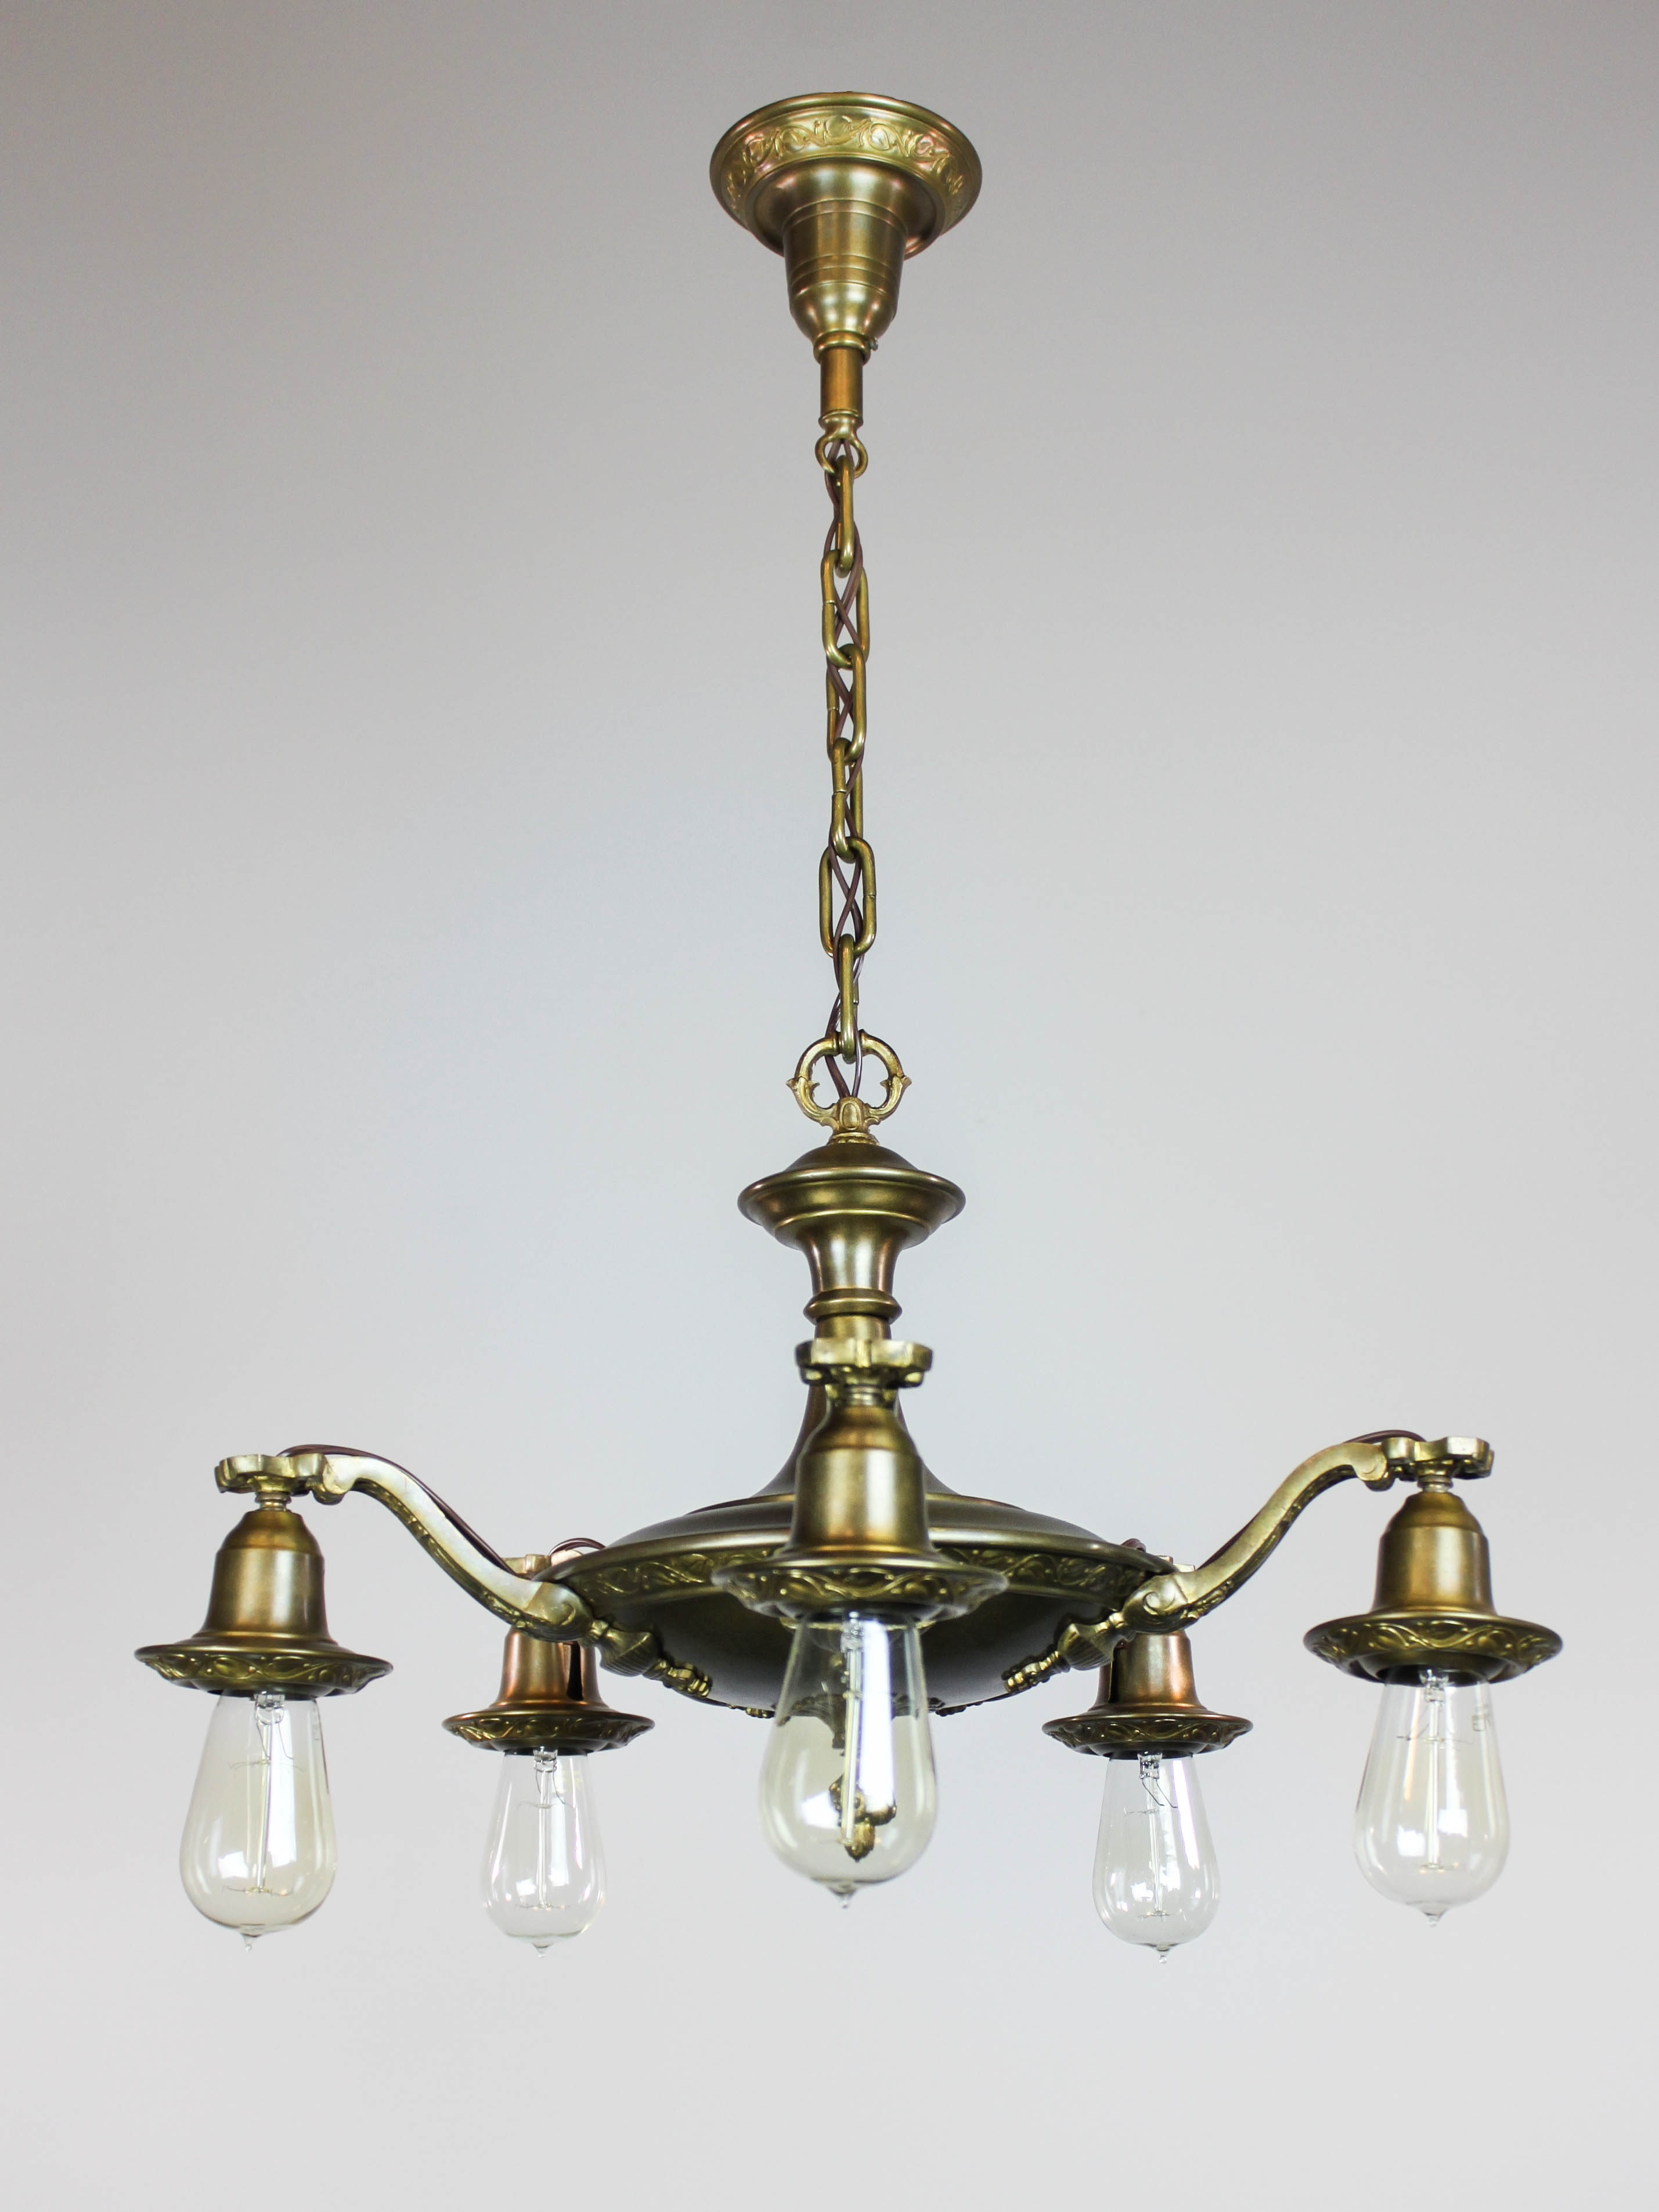 Bare Bulb Pendant Light Fixture